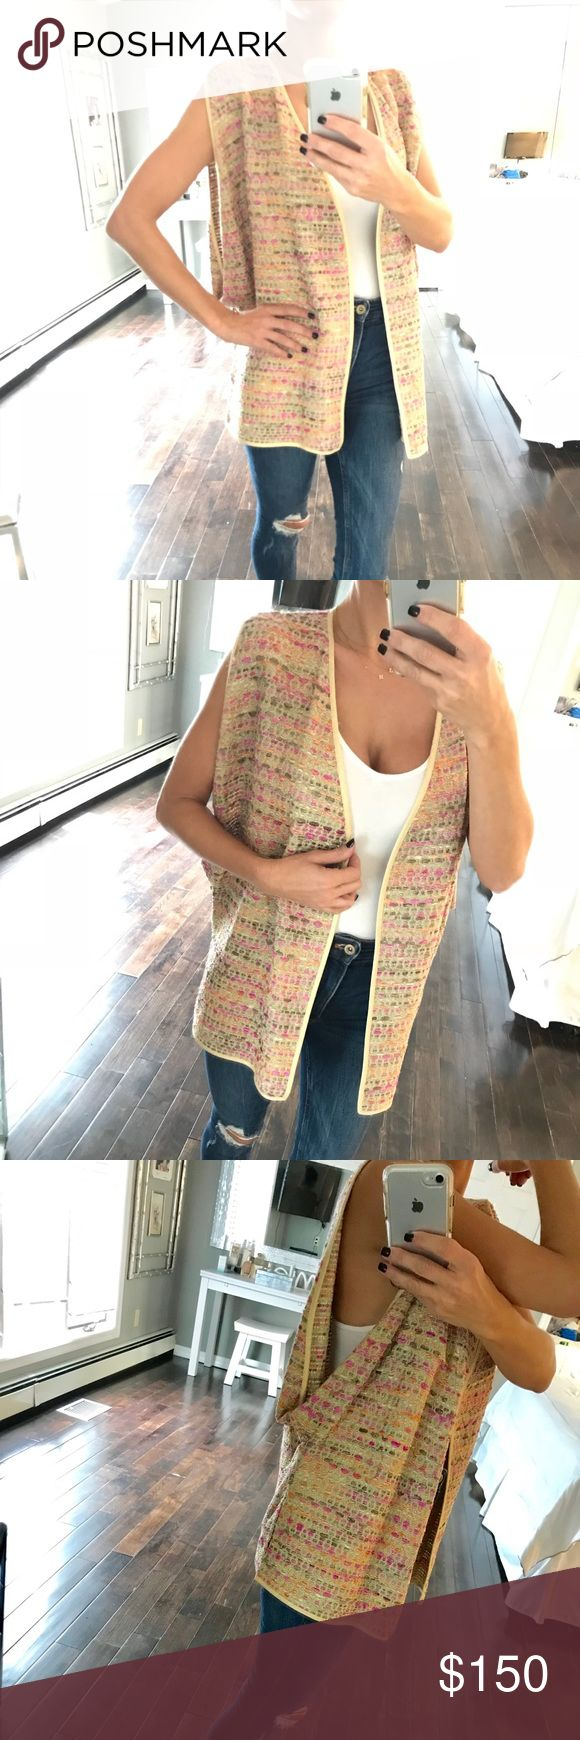 """$450 NWT Diane Von Furstenberg multi color vest P NWT retail is $450 I paid $250 Stunning multi color vest  Wide arm openings Fits XS Small and Medium in my opinion Tag say size P for petite  Model is 5'2"""" tall Diane Von Furstenberg Jackets & Coats Vests"""